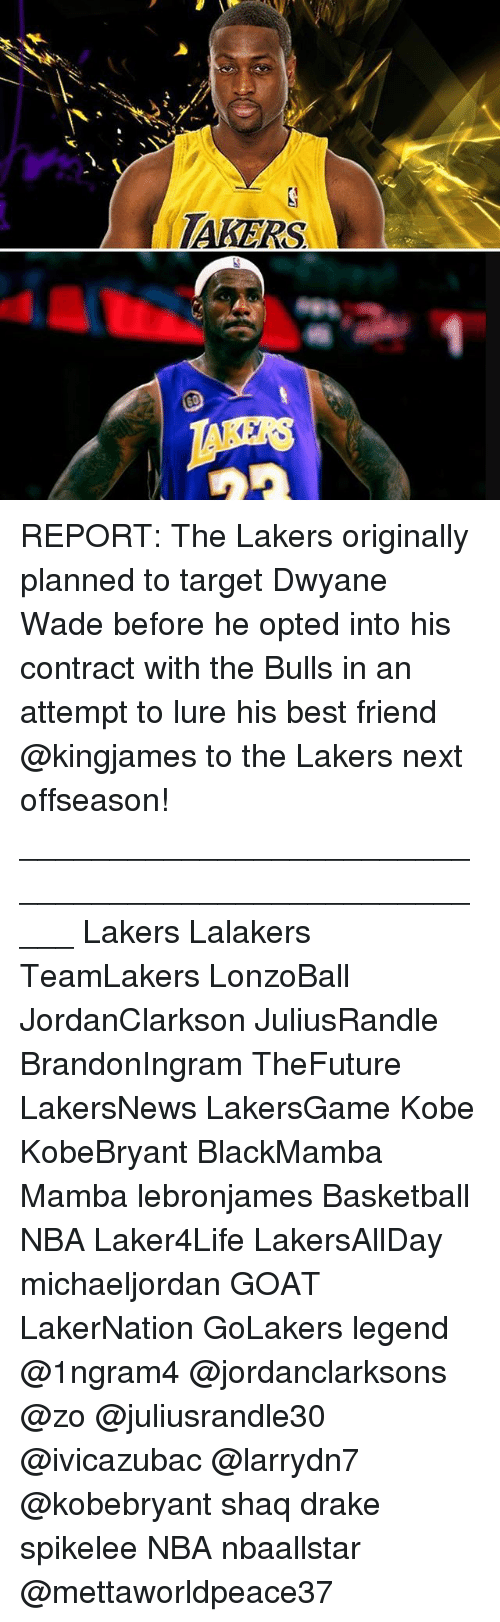 the bulls: TAKERS REPORT: The Lakers originally planned to target Dwyane Wade before he opted into his contract with the Bulls in an attempt to lure his best friend @kingjames to the Lakers next offseason! _____________________________________________________ Lakers Lalakers TeamLakers LonzoBall JordanClarkson JuliusRandle BrandonIngram TheFuture LakersNews LakersGame Kobe KobeBryant BlackMamba Mamba lebronjames Basketball NBA Laker4Life LakersAllDay michaeljordan GOAT LakerNation GoLakers legend @1ngram4 @jordanclarksons @zo @juliusrandle30 @ivicazubac @larrydn7 @kobebryant shaq drake spikelee NBA nbaallstar @mettaworldpeace37